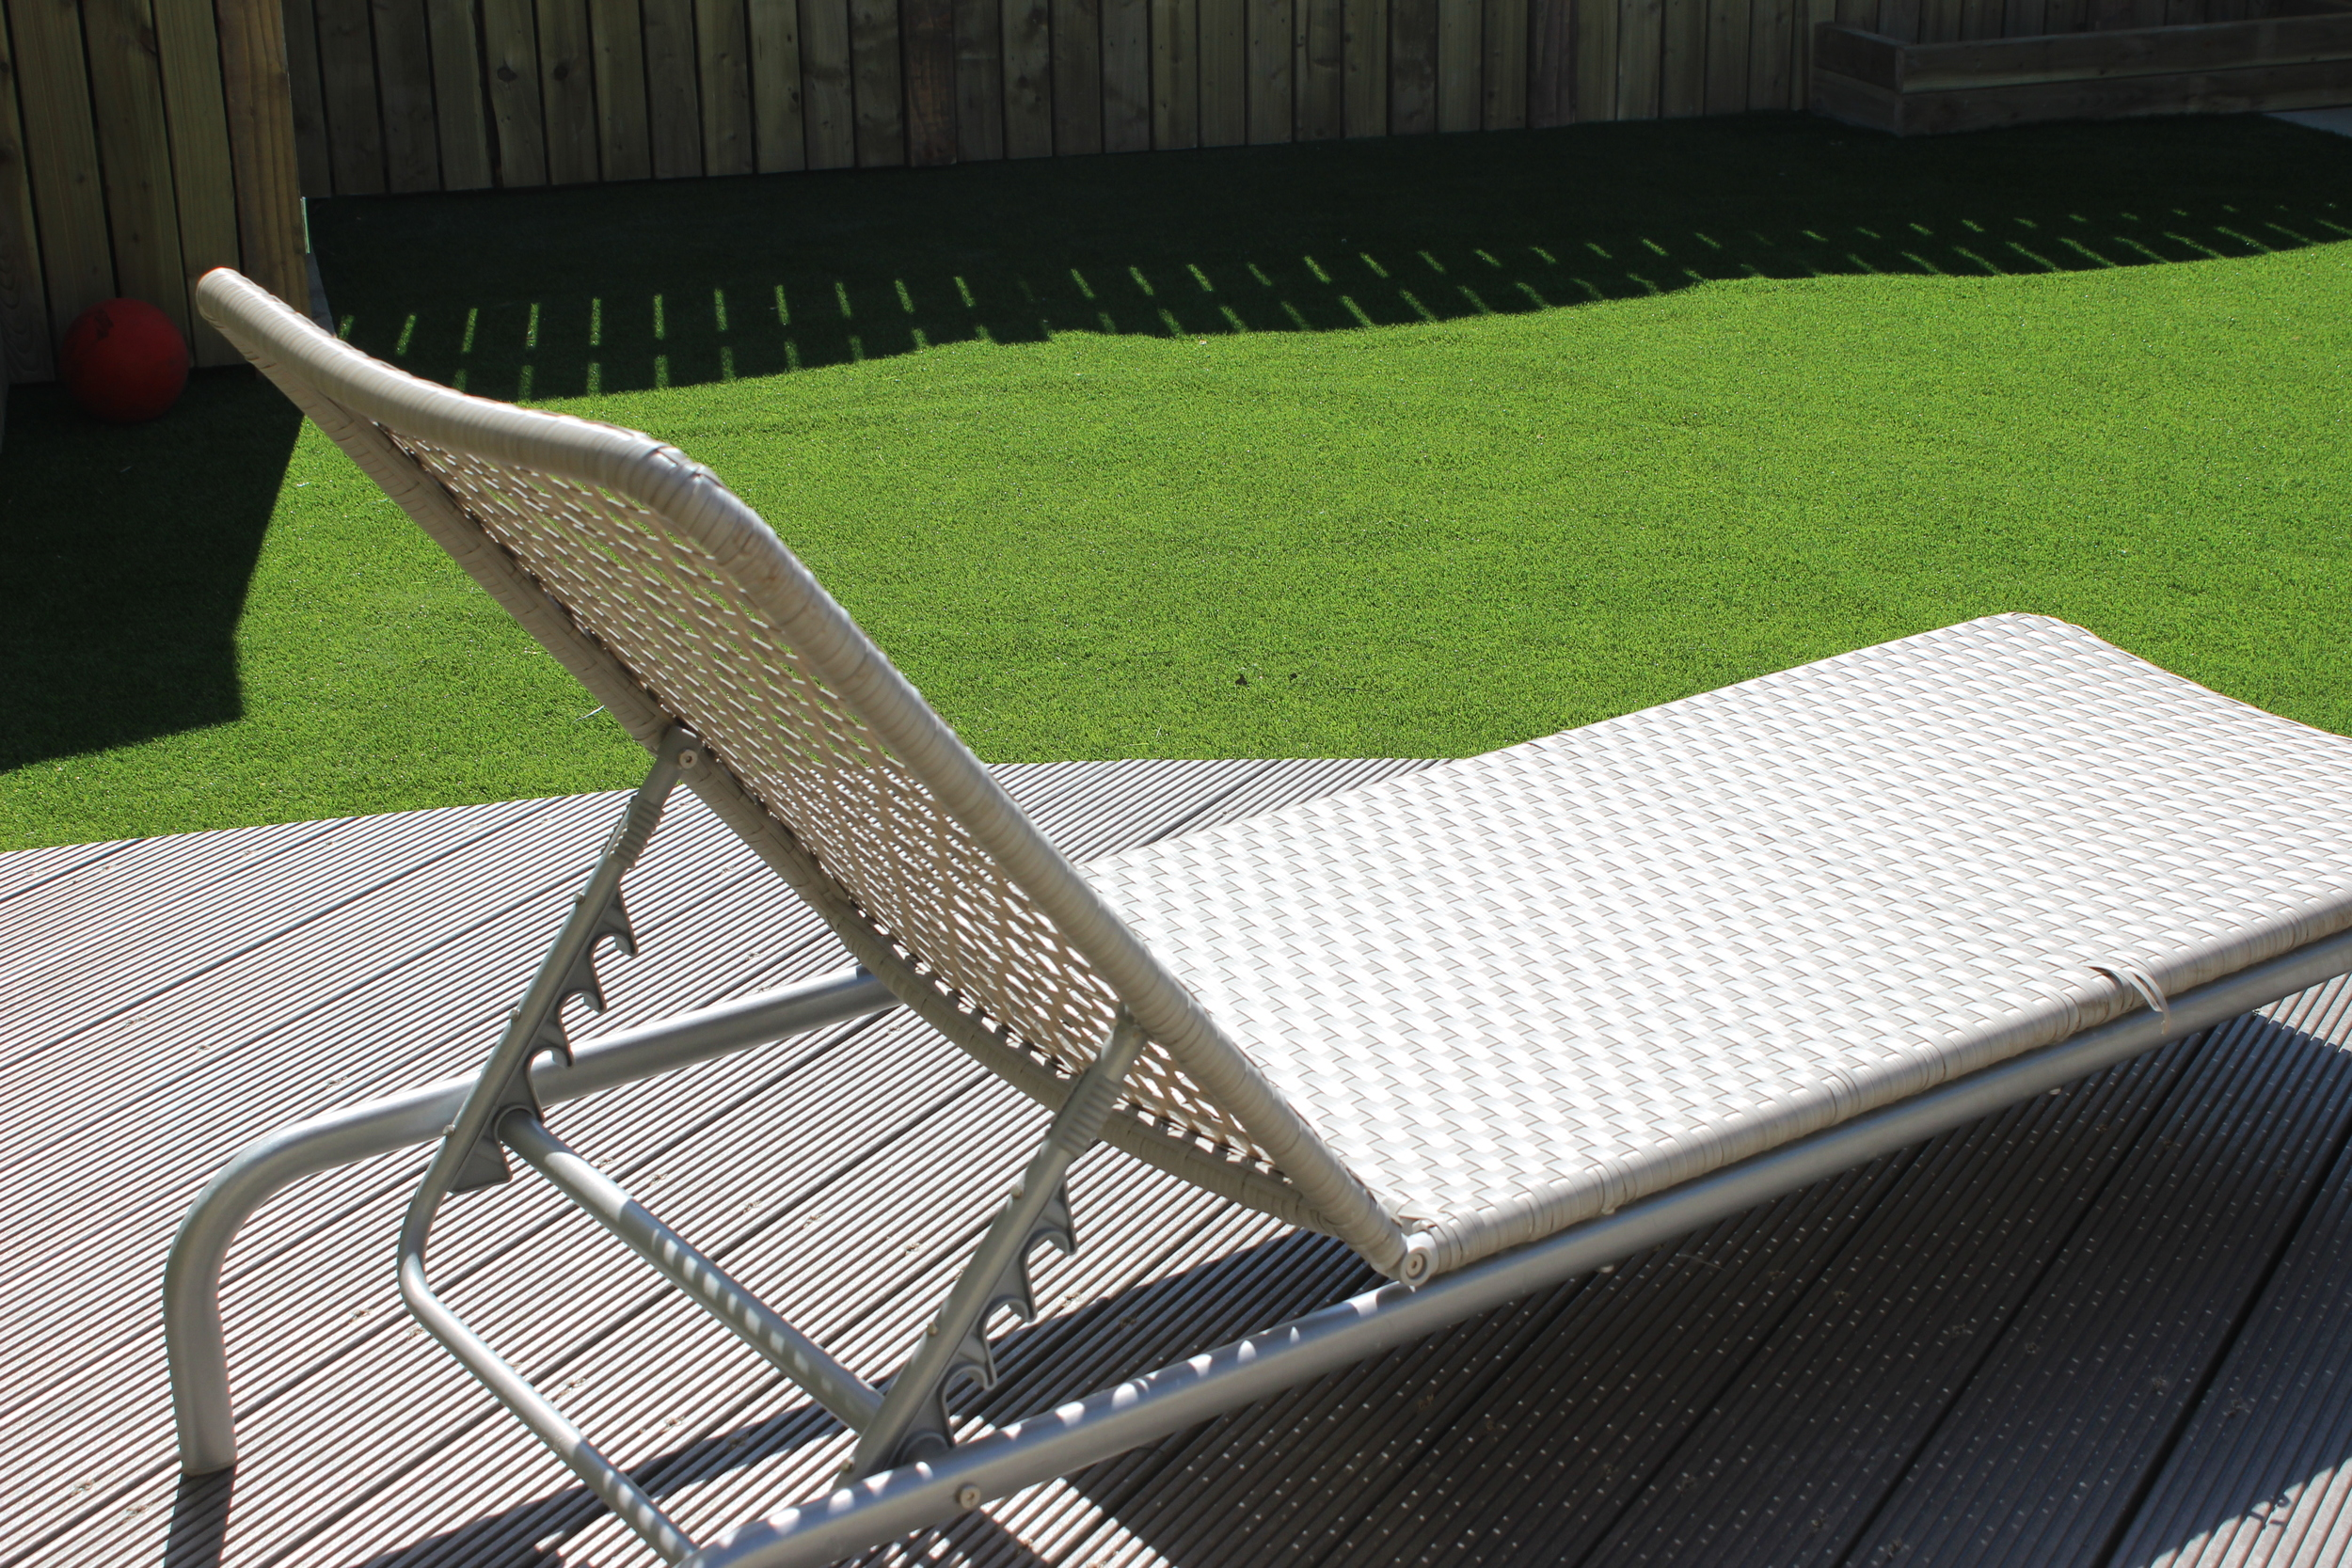 Deck Chair and Grass